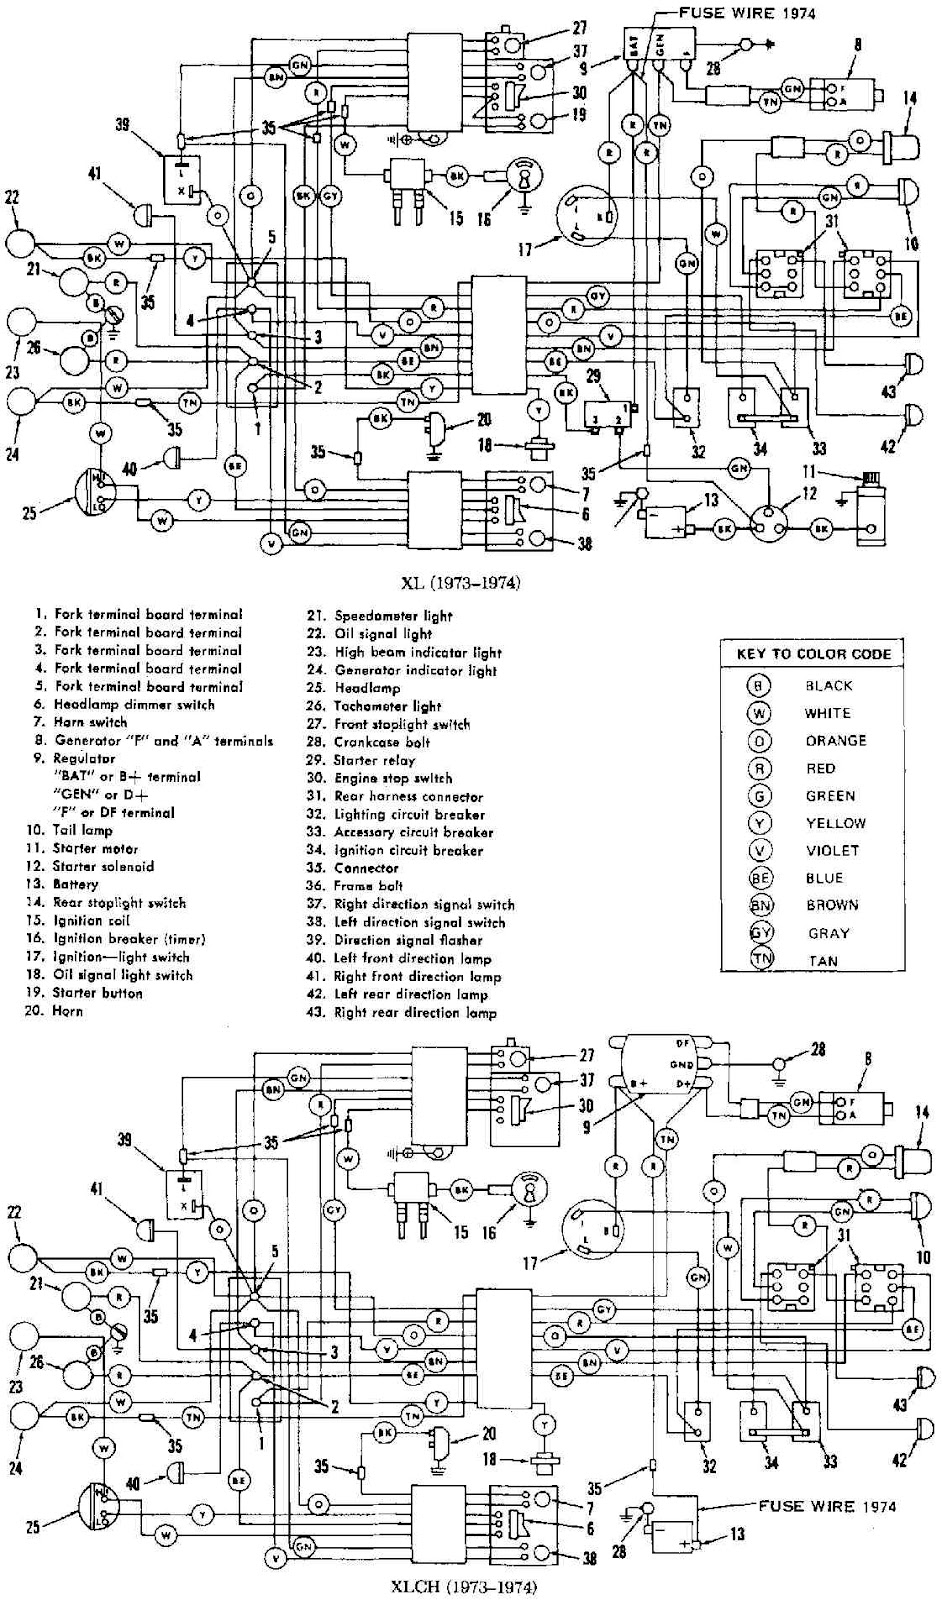 small resolution of 2009 harley flh wiring diagram wiring library 1964 flh wiring diagram